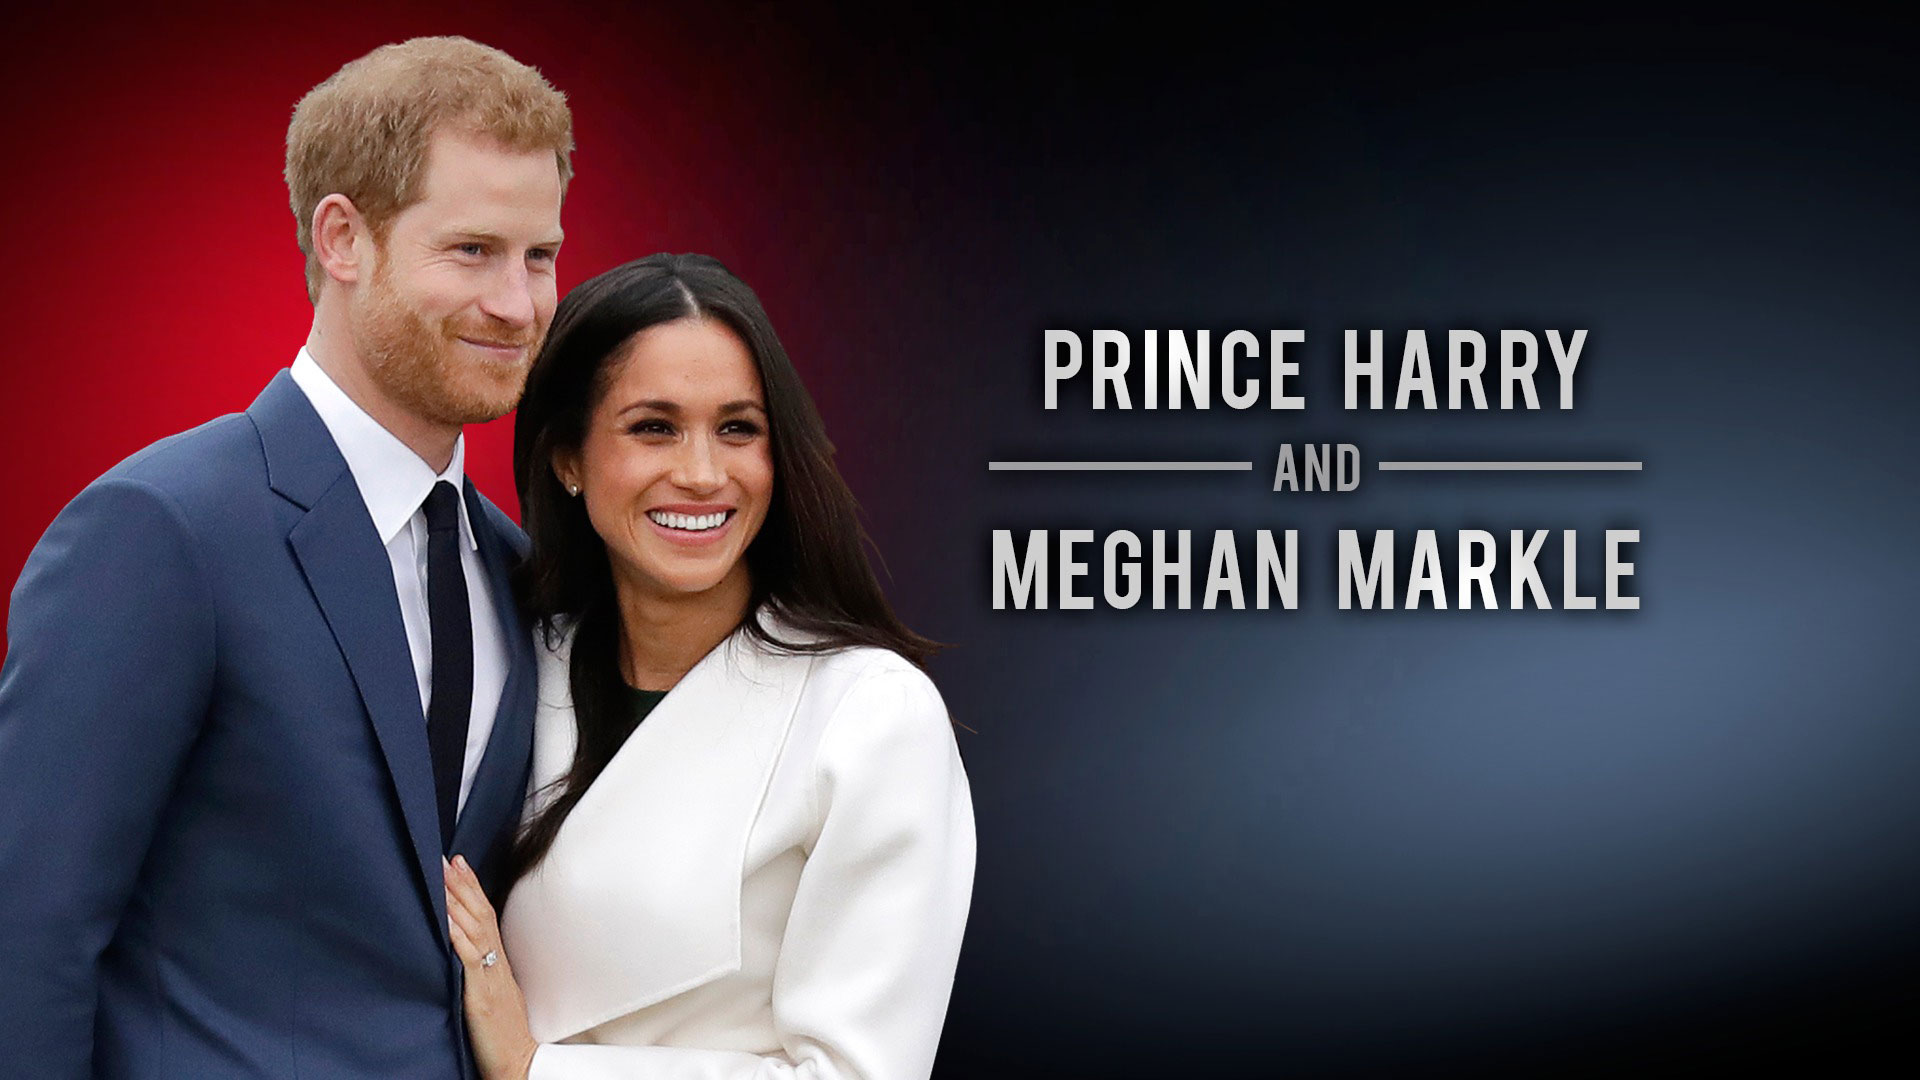 Cbs Royal Wedding Coverage.Cbs Live Coverage Of The Royal Wedding On May 19